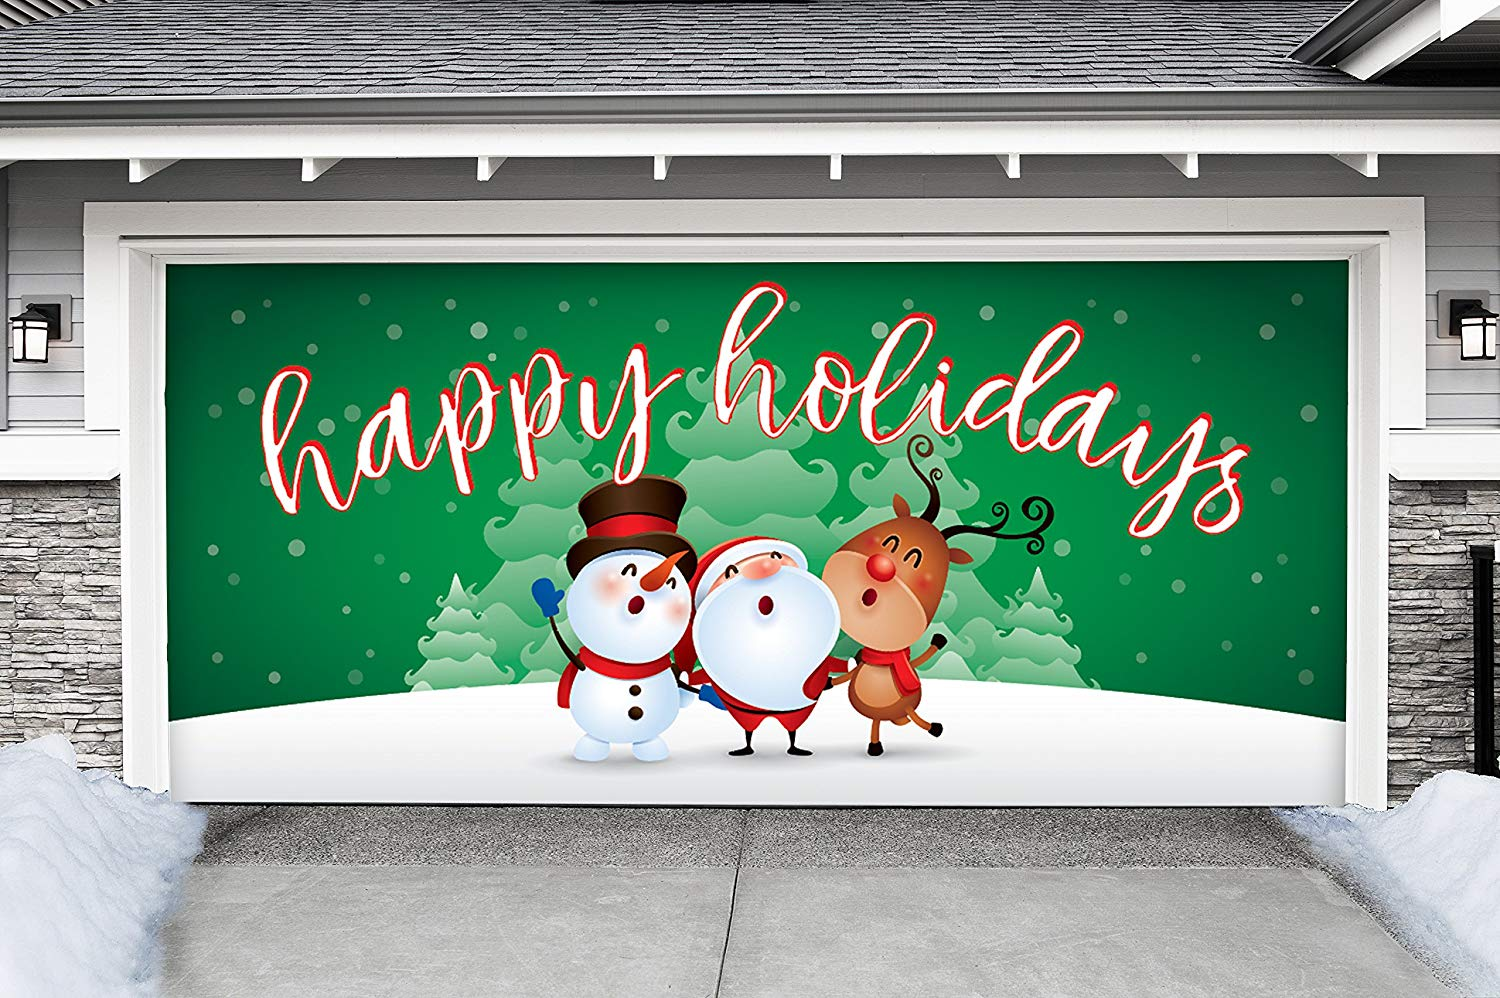 Victory Corps Outdoor Christmas Holiday Garage Door Banner Cover Mural Décoration - Christmas Characters Happy Holidays Winter - Outdoor Christmas Holiday Garage Door Banner Décor Sign 7'x16'